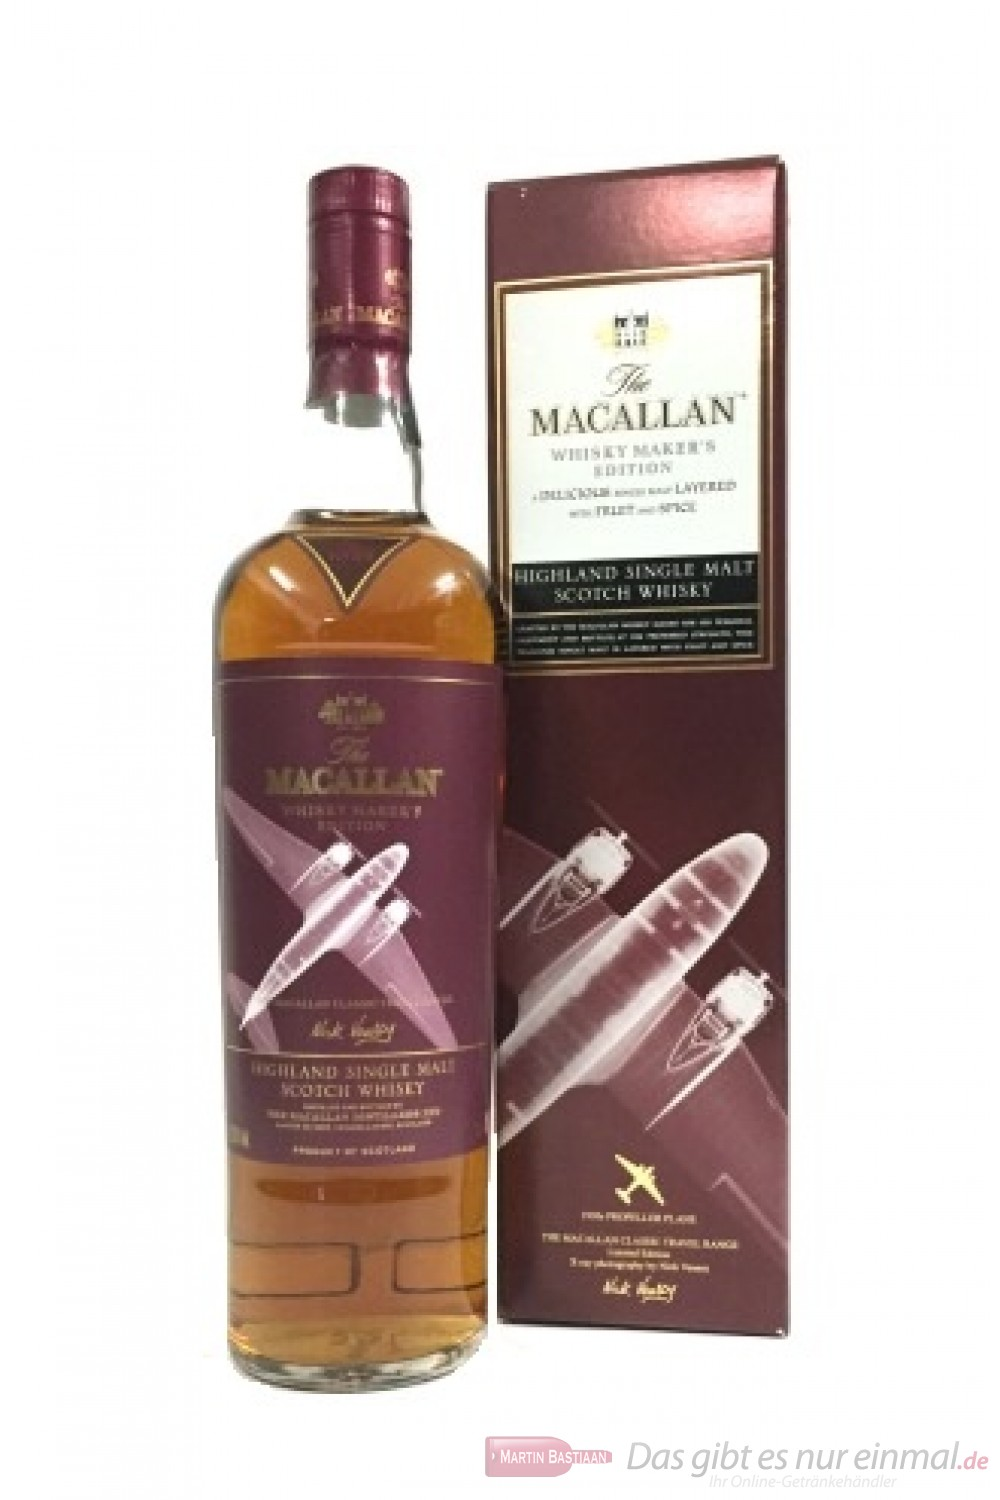 The Macallan Whisky Maker´s Edition